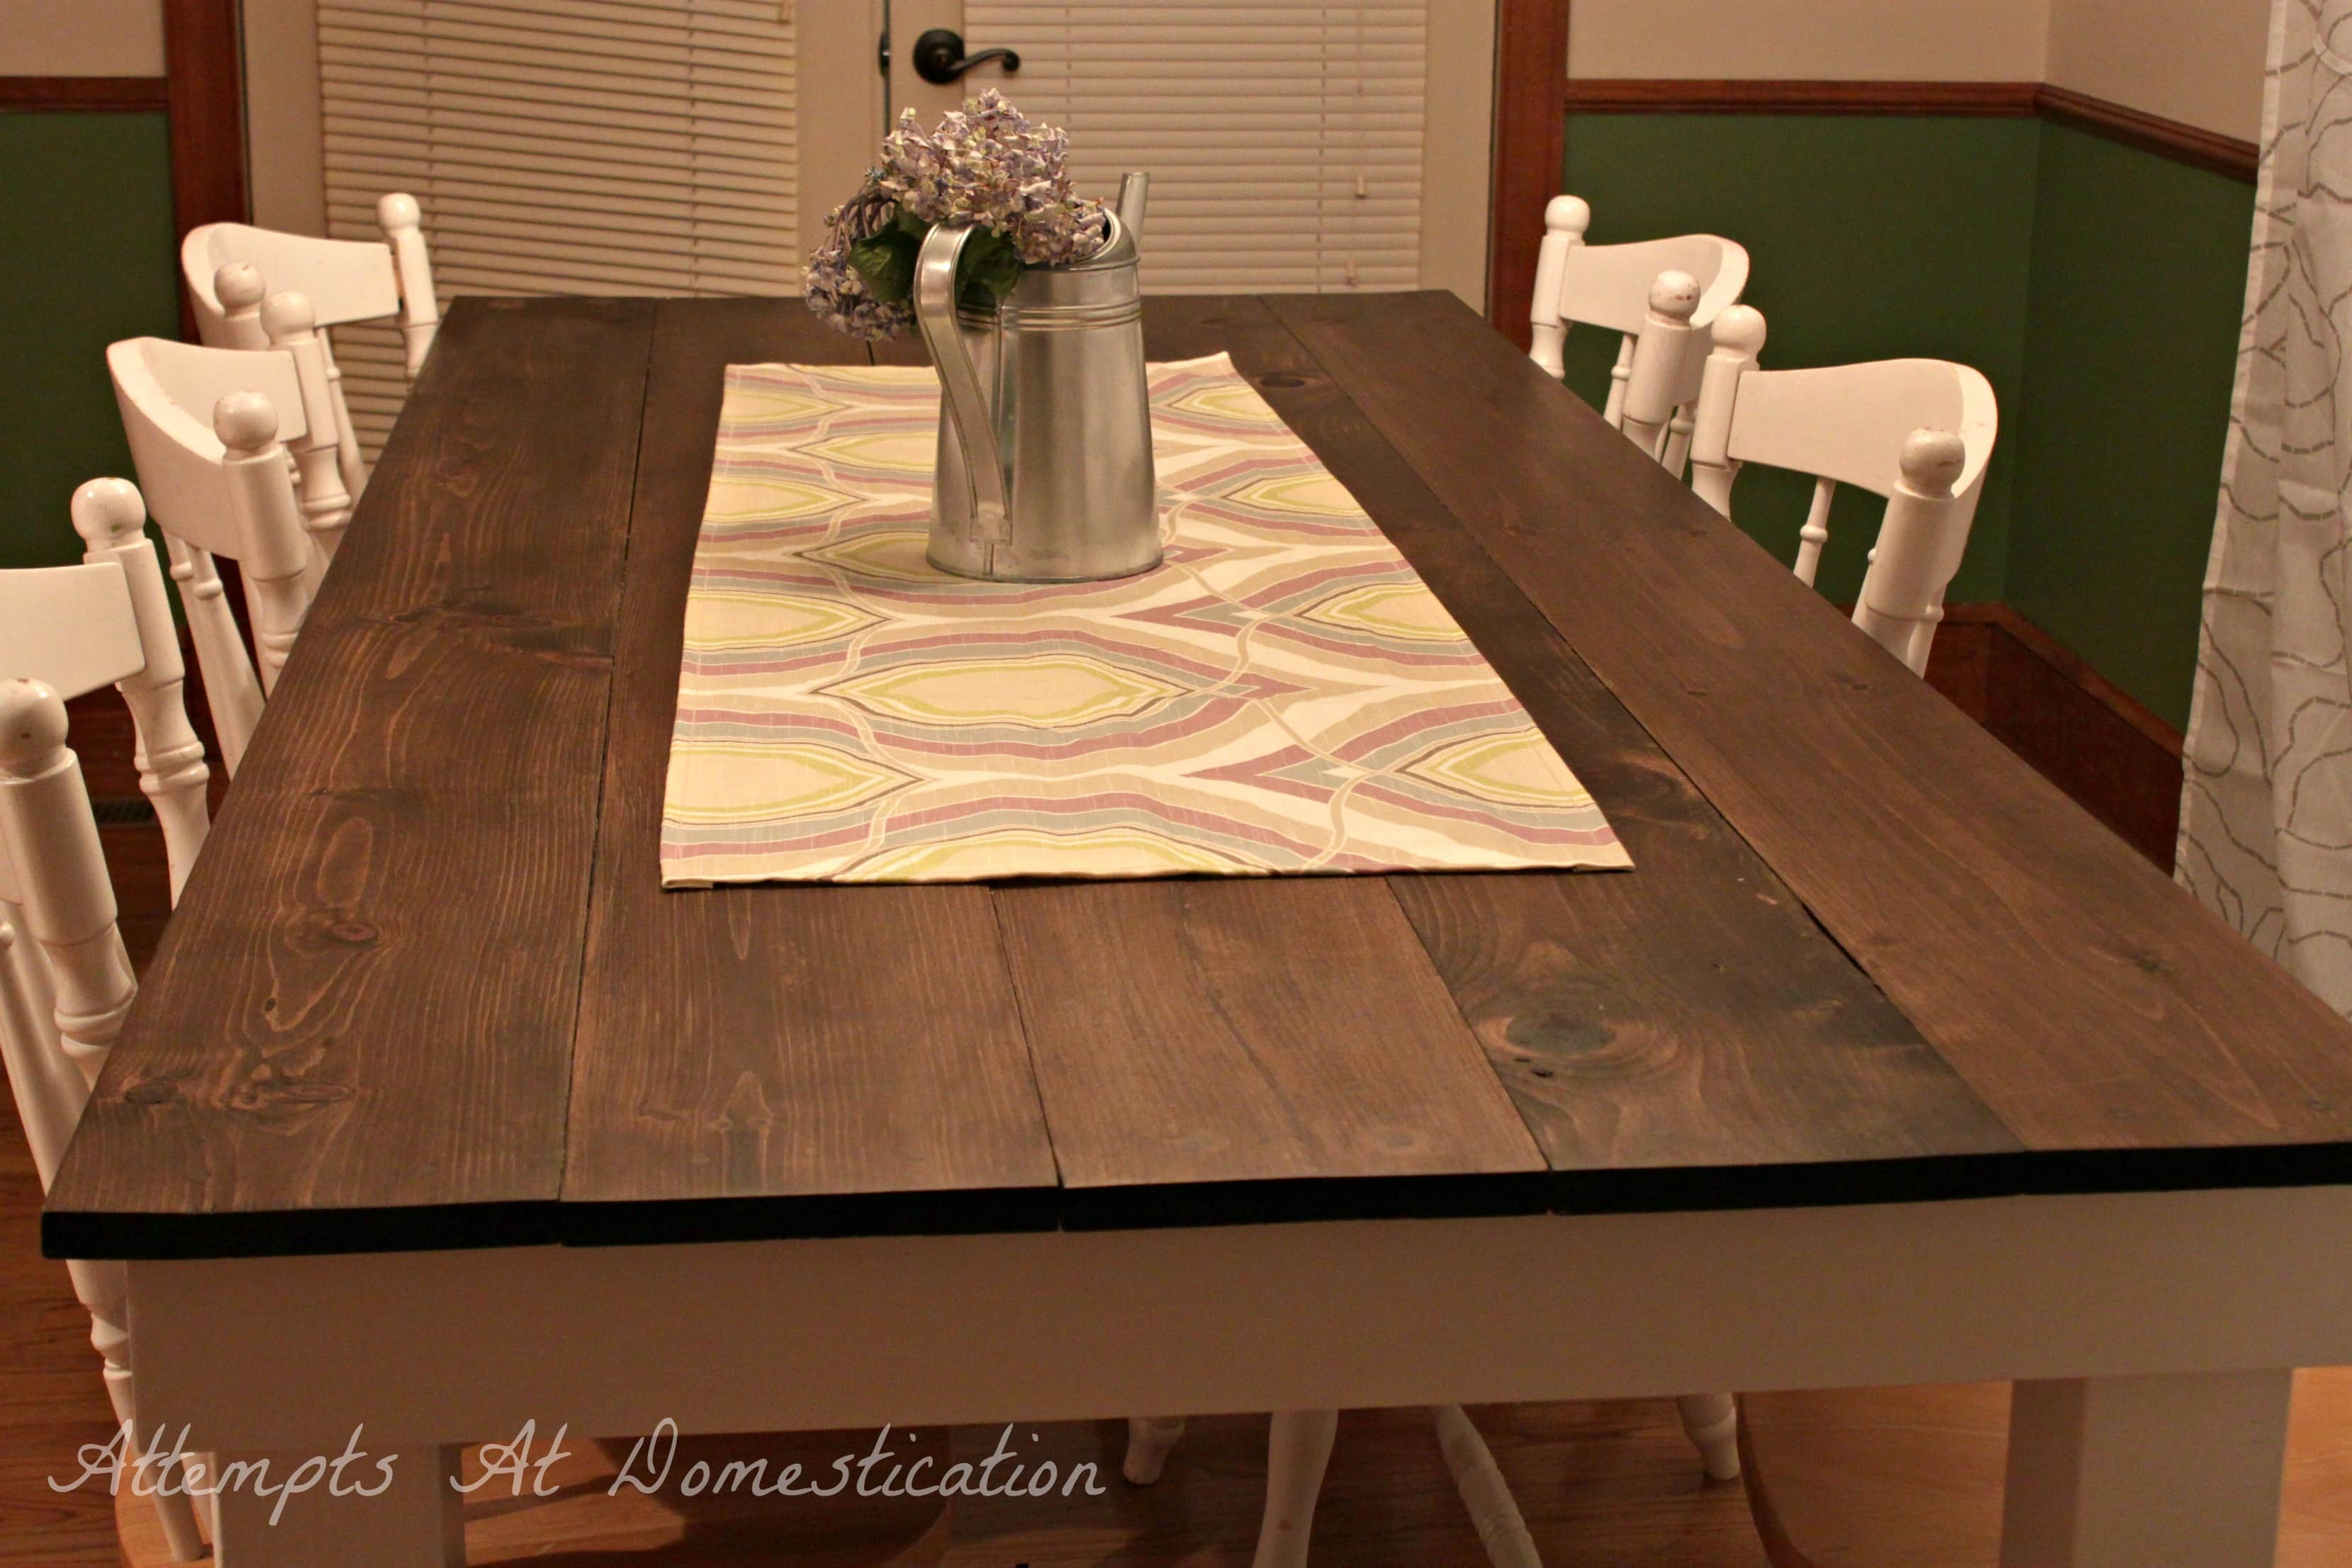 table runner new 327 table runner fabric. Black Bedroom Furniture Sets. Home Design Ideas